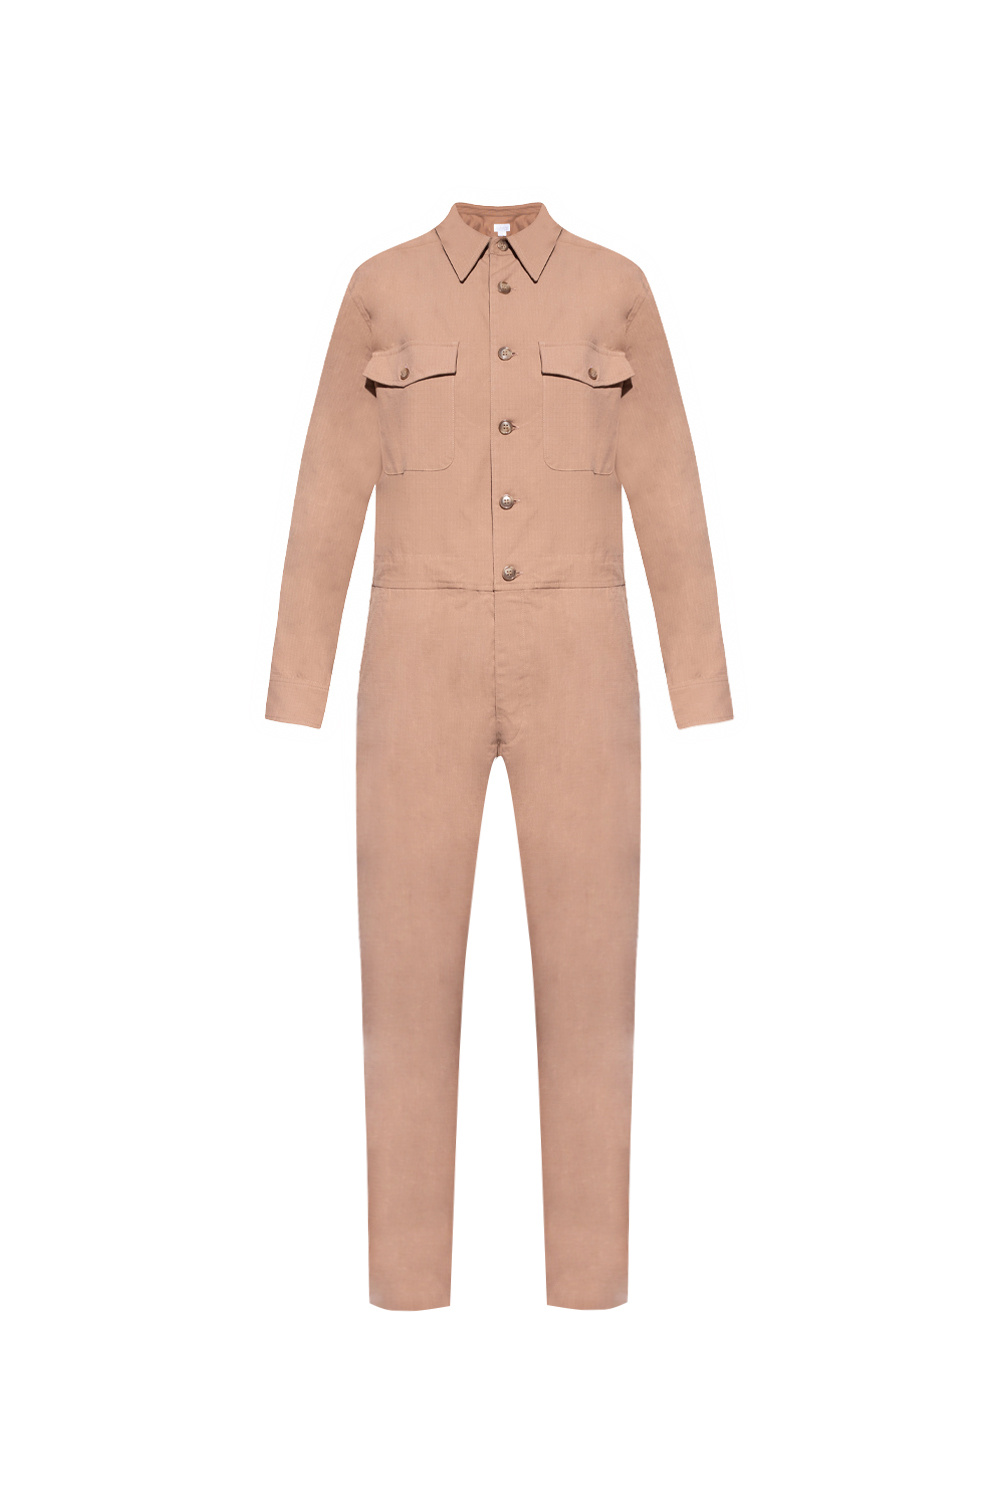 A.P.C. A.P.C. x Suzanne Koller